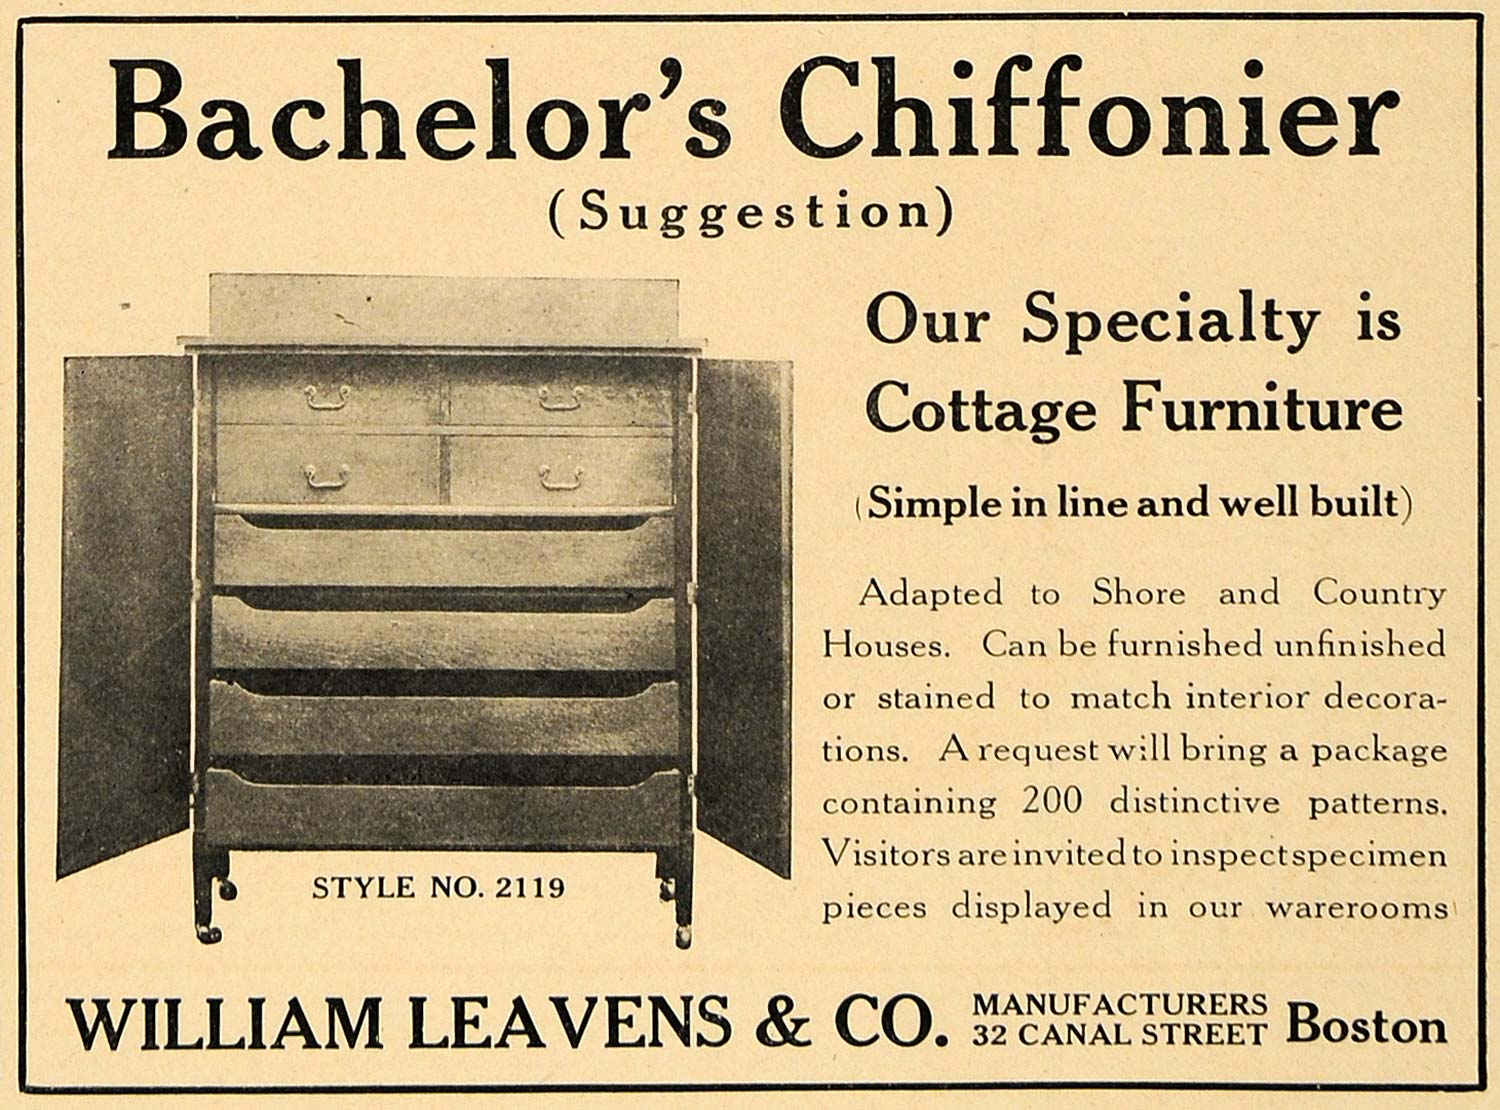 1907 Ad Bachelors Chiffonier William Leavens Furniture - ORIGINAL CL8